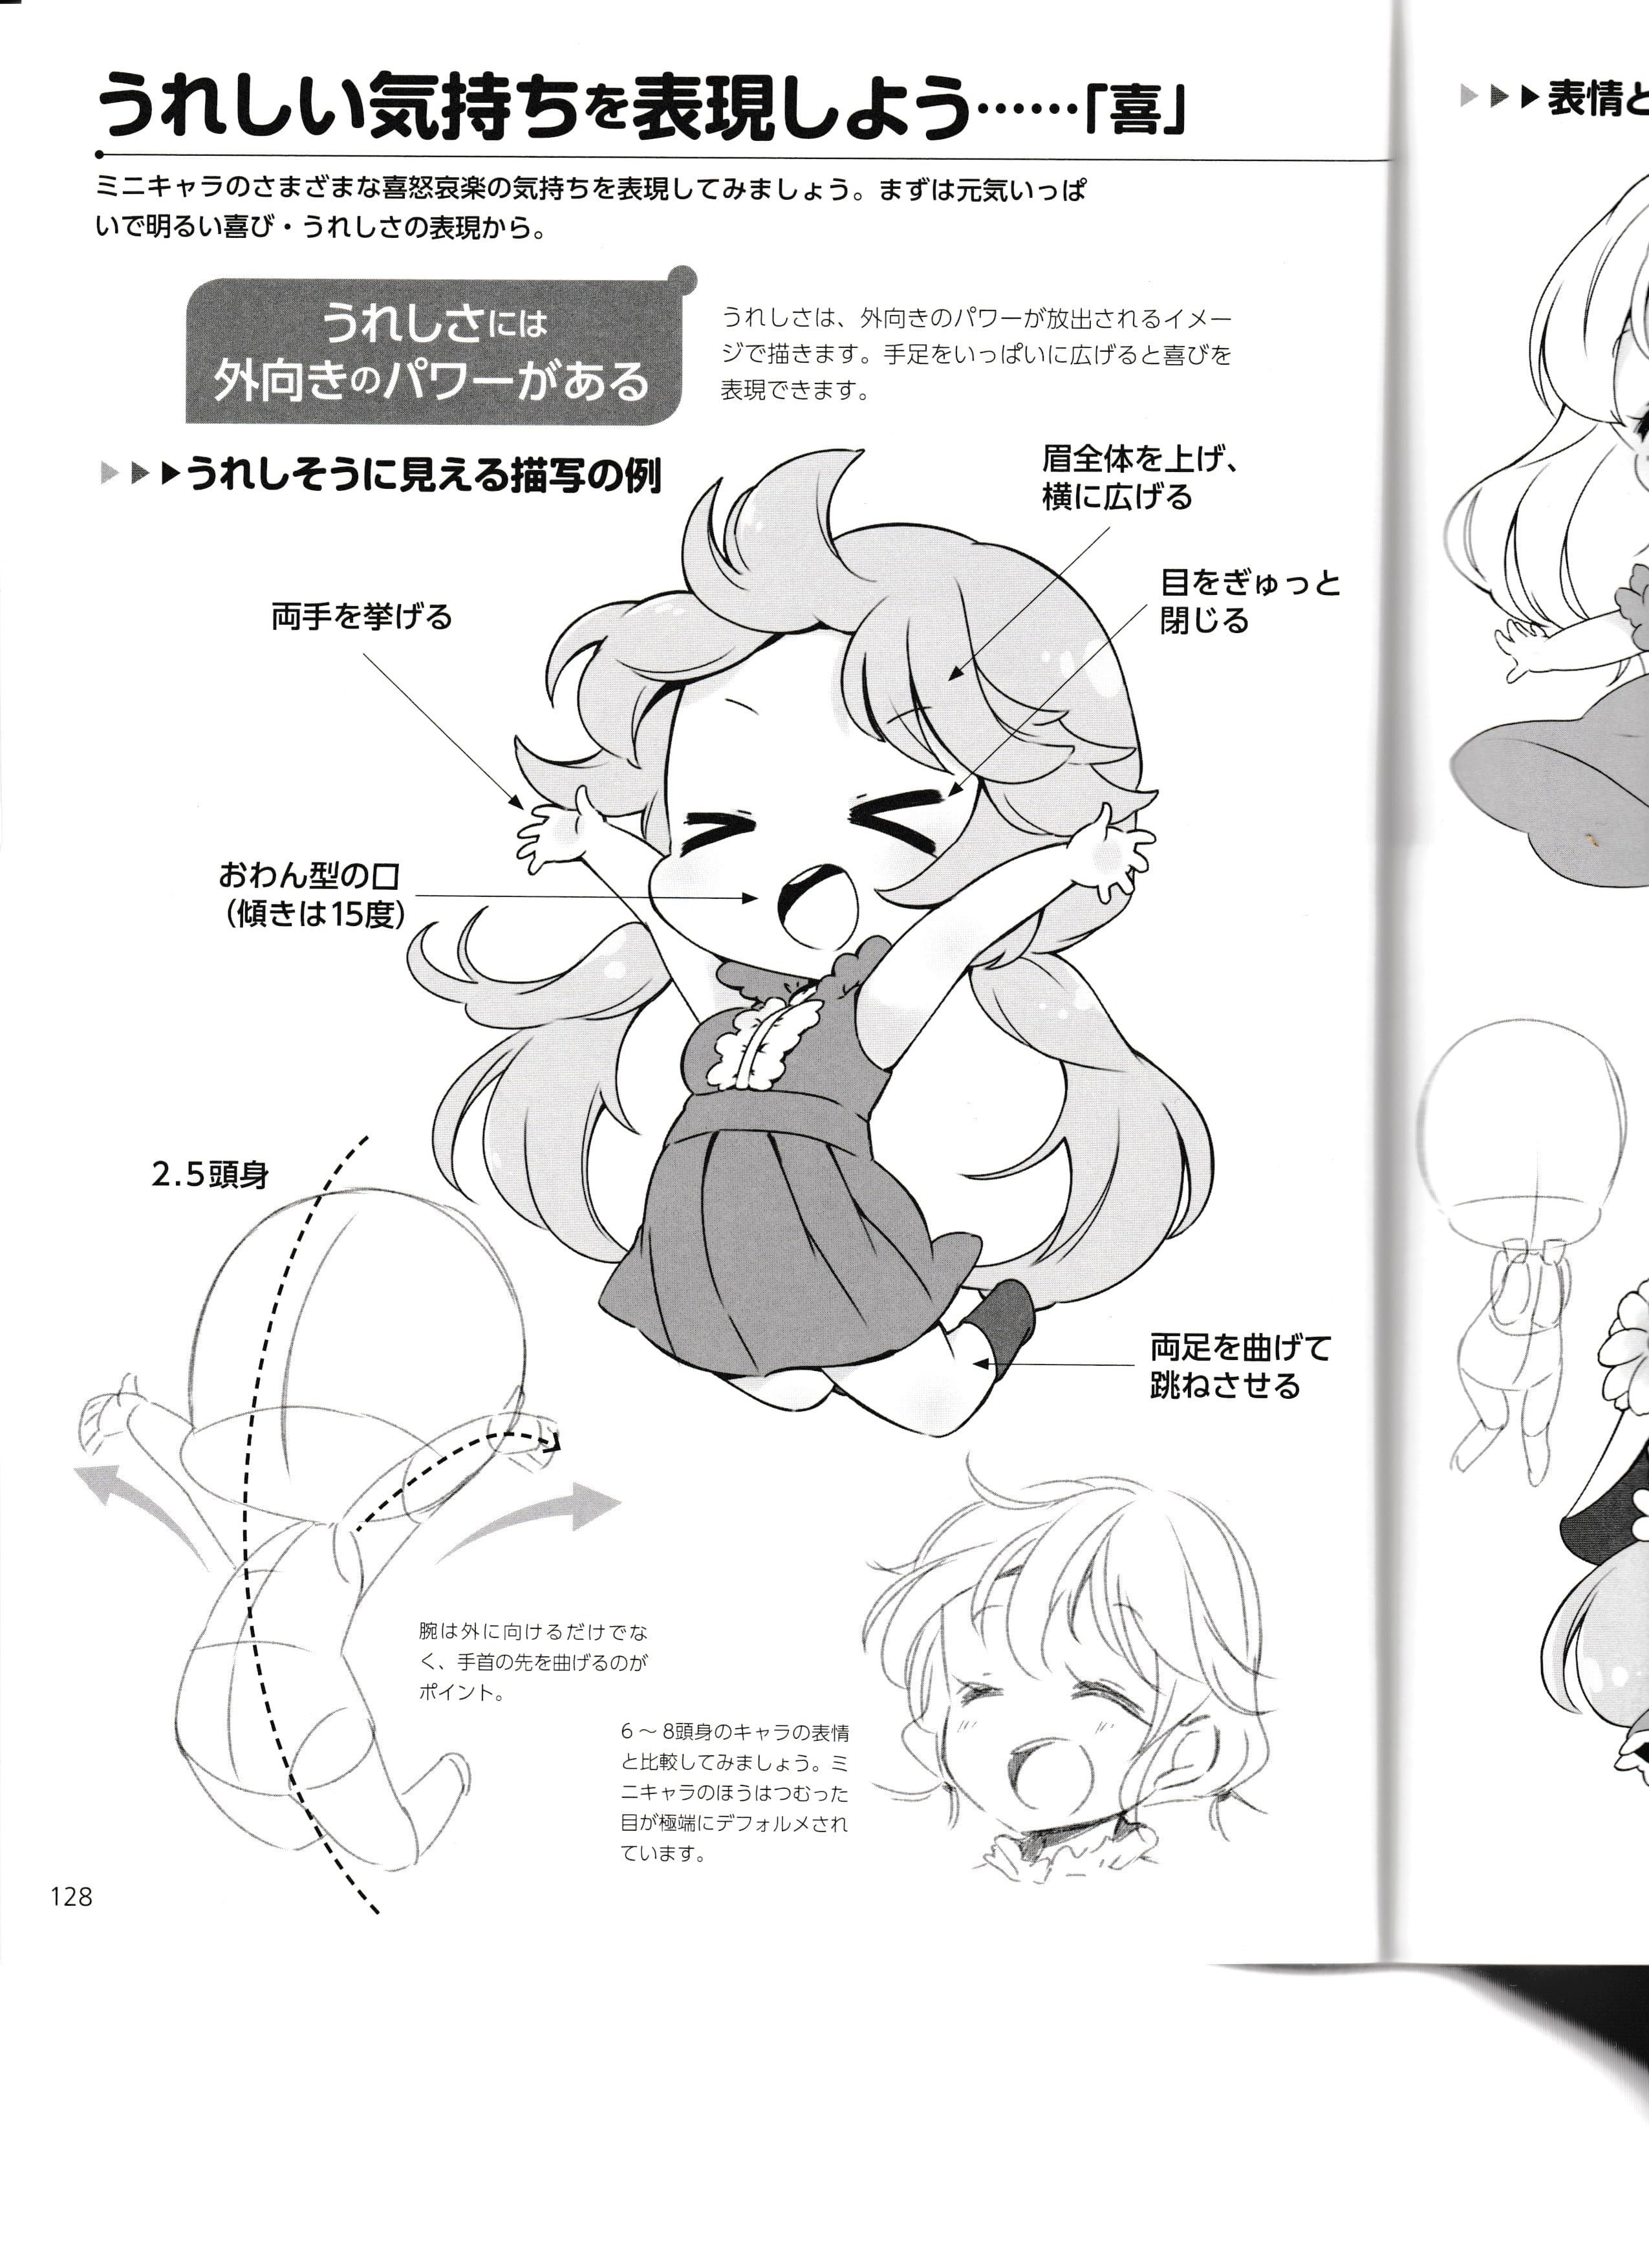 DHL How to Draw Moving Character Design Illustrations Anime Manga Art Guide Book